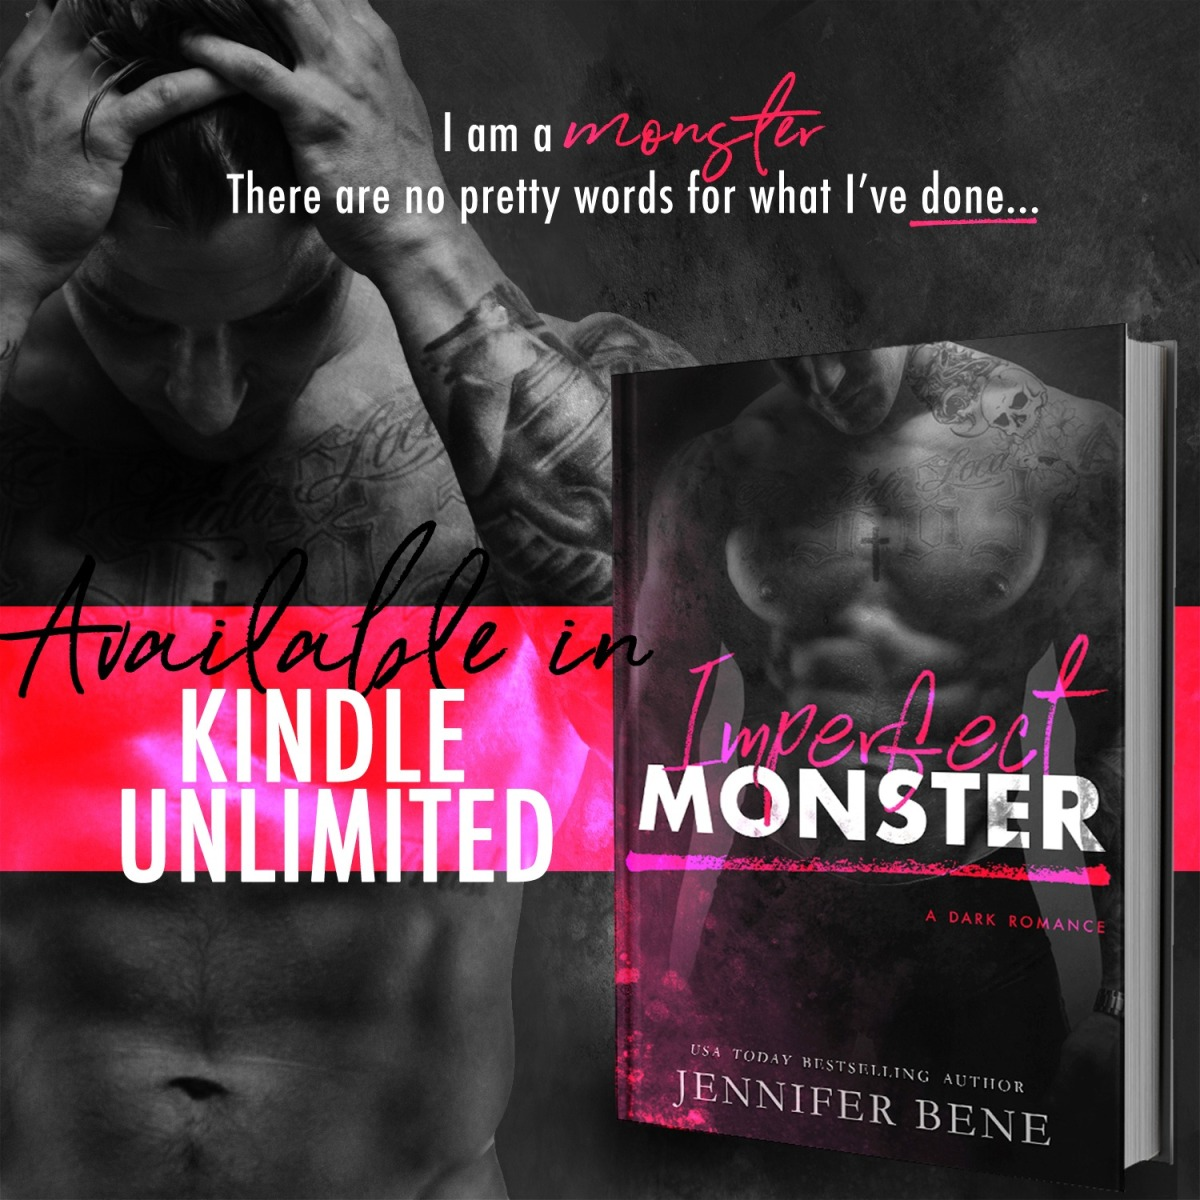 imperfect monster a dark romance